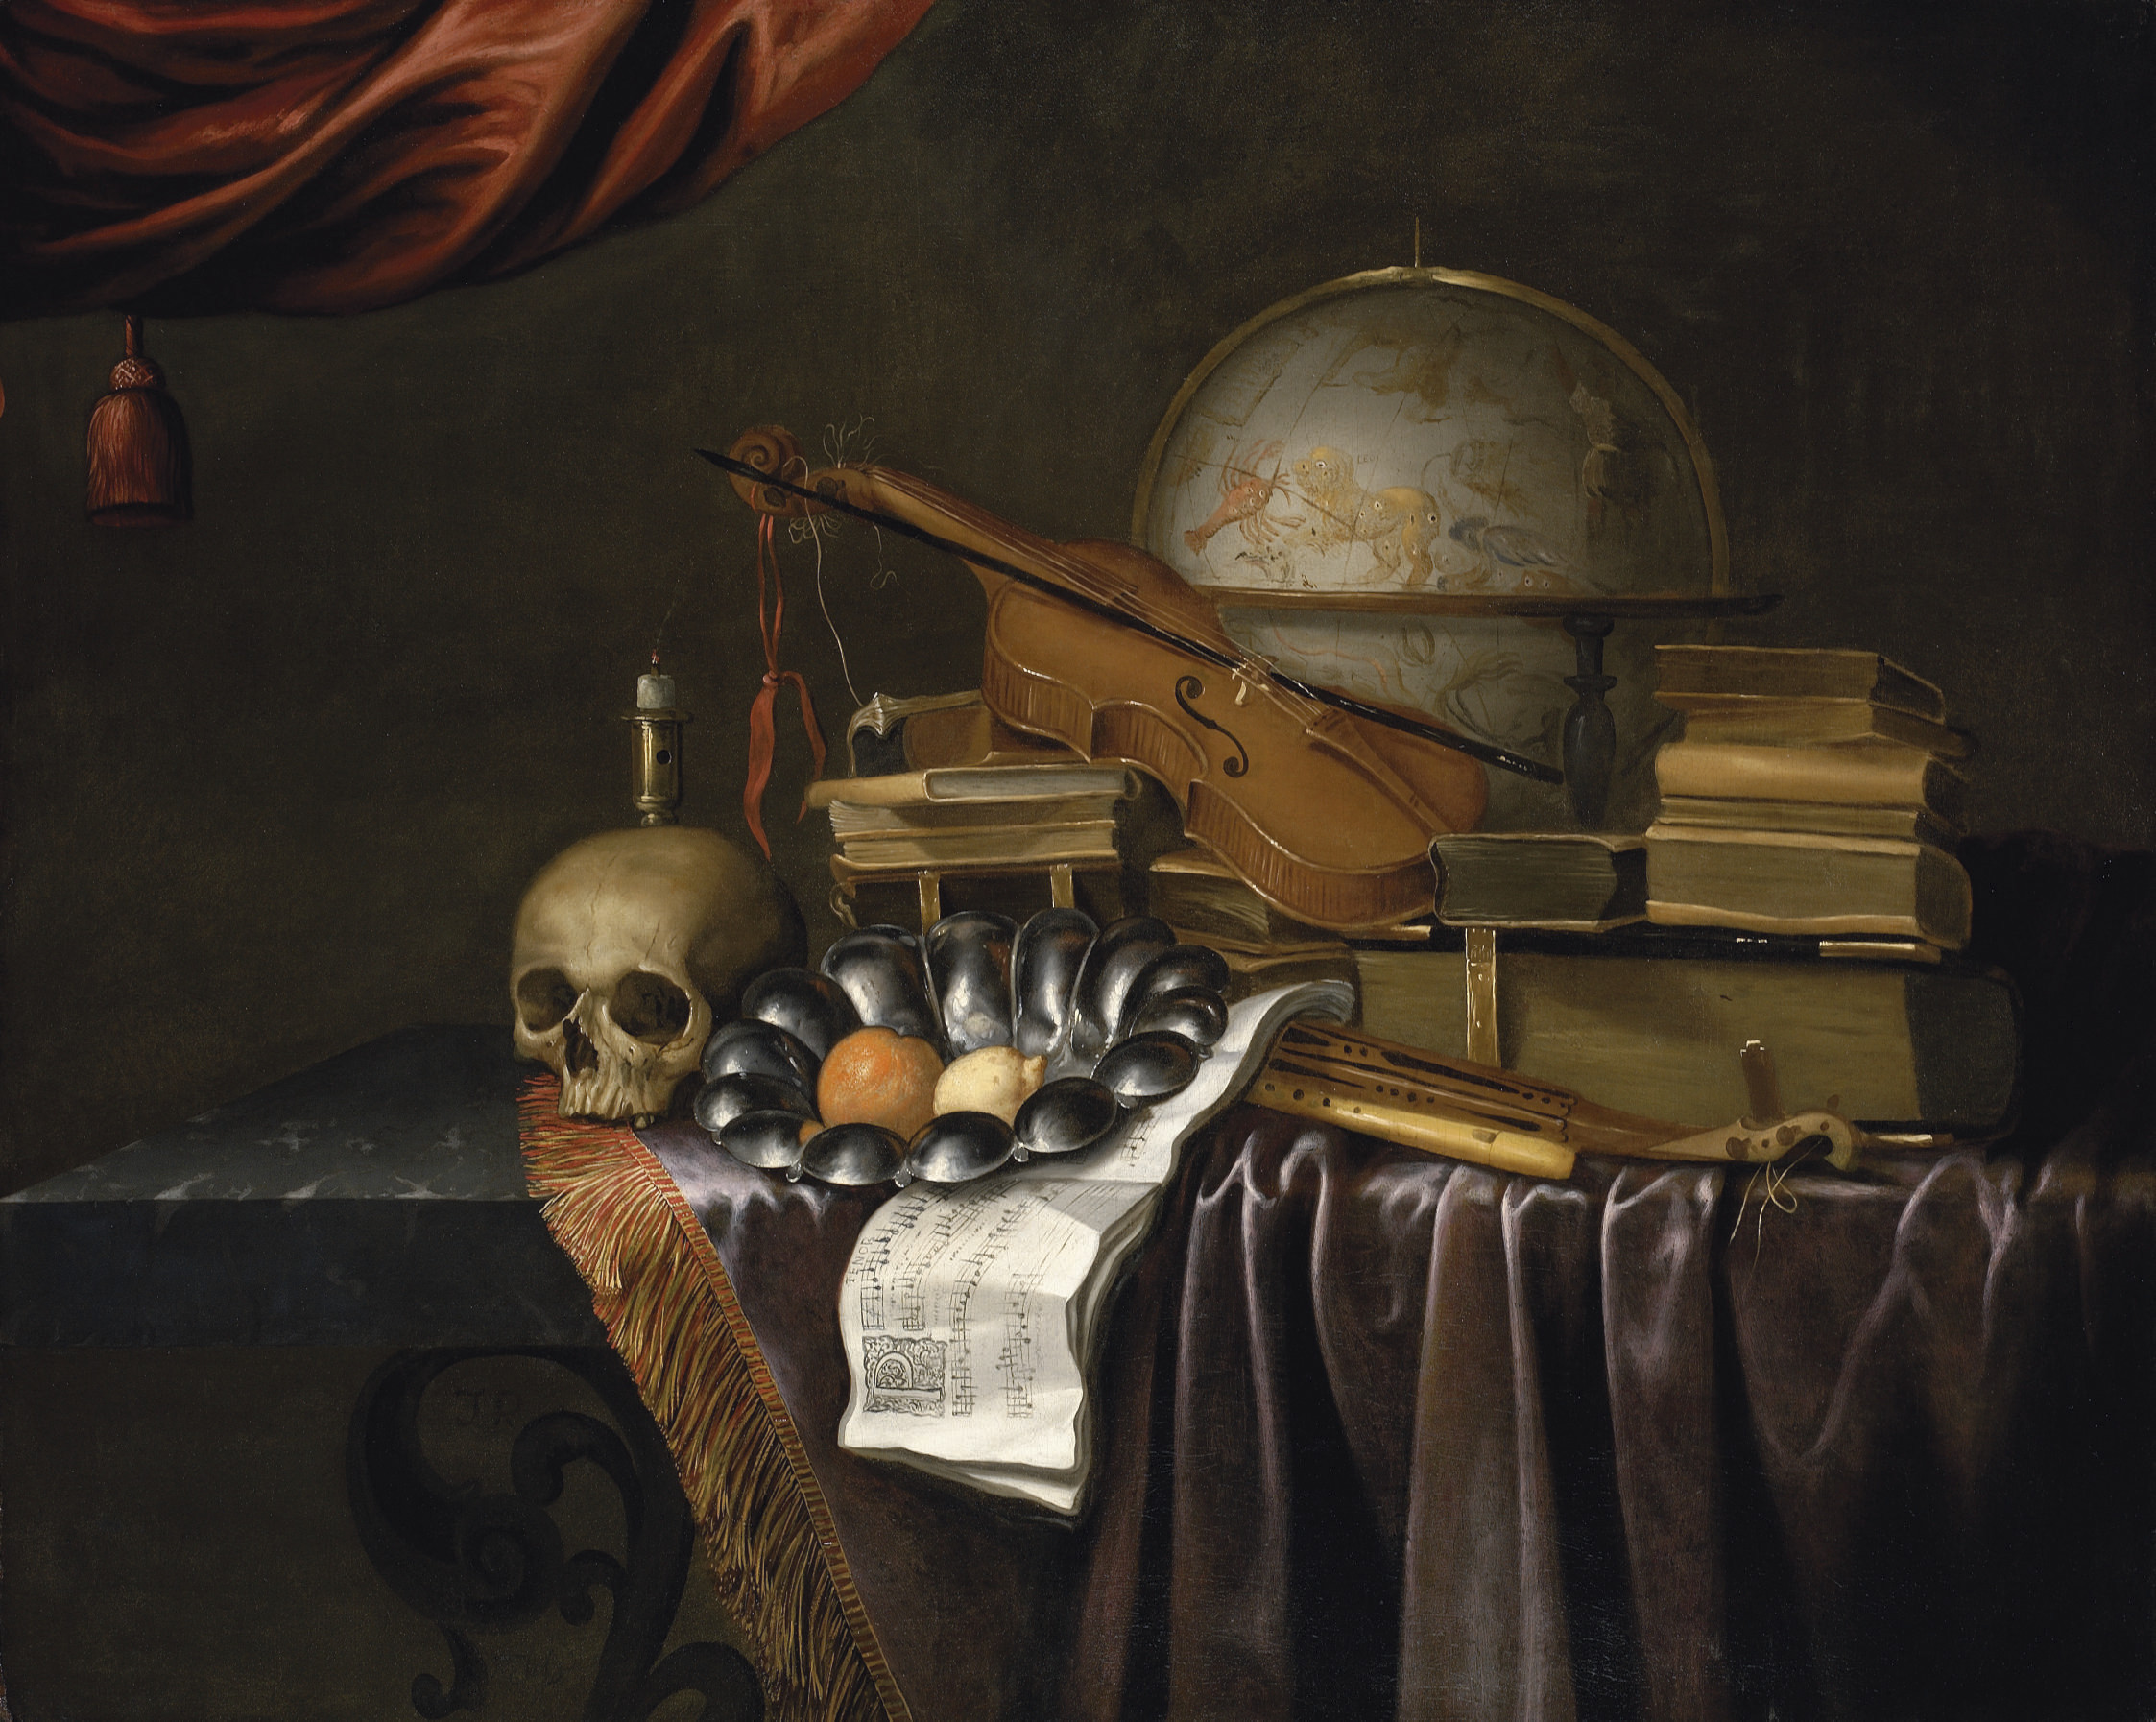 A vanitas with a skull, an orange and a lemon in a pewter bowl, an extinguished candle, books, music, musical instruments and a celestial globe, on partly-draped marble table